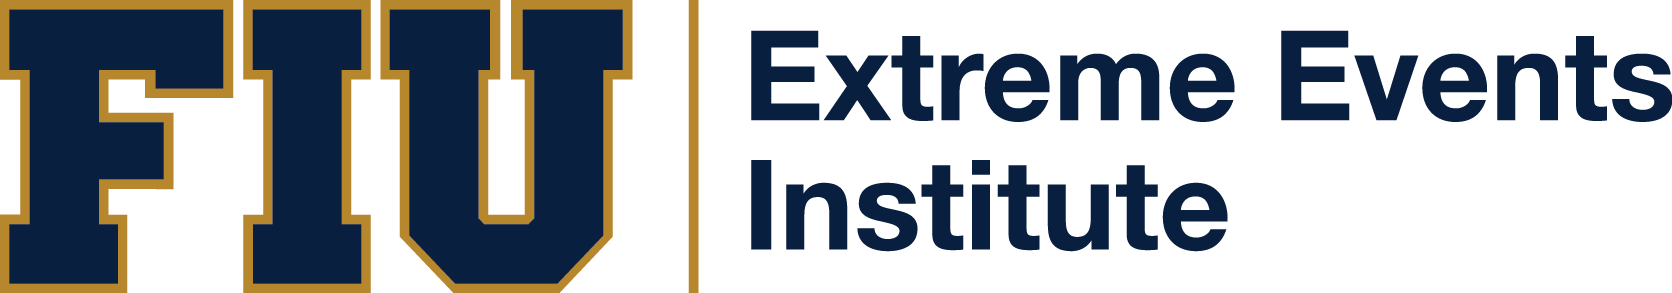 FIU Extreme Events Institute